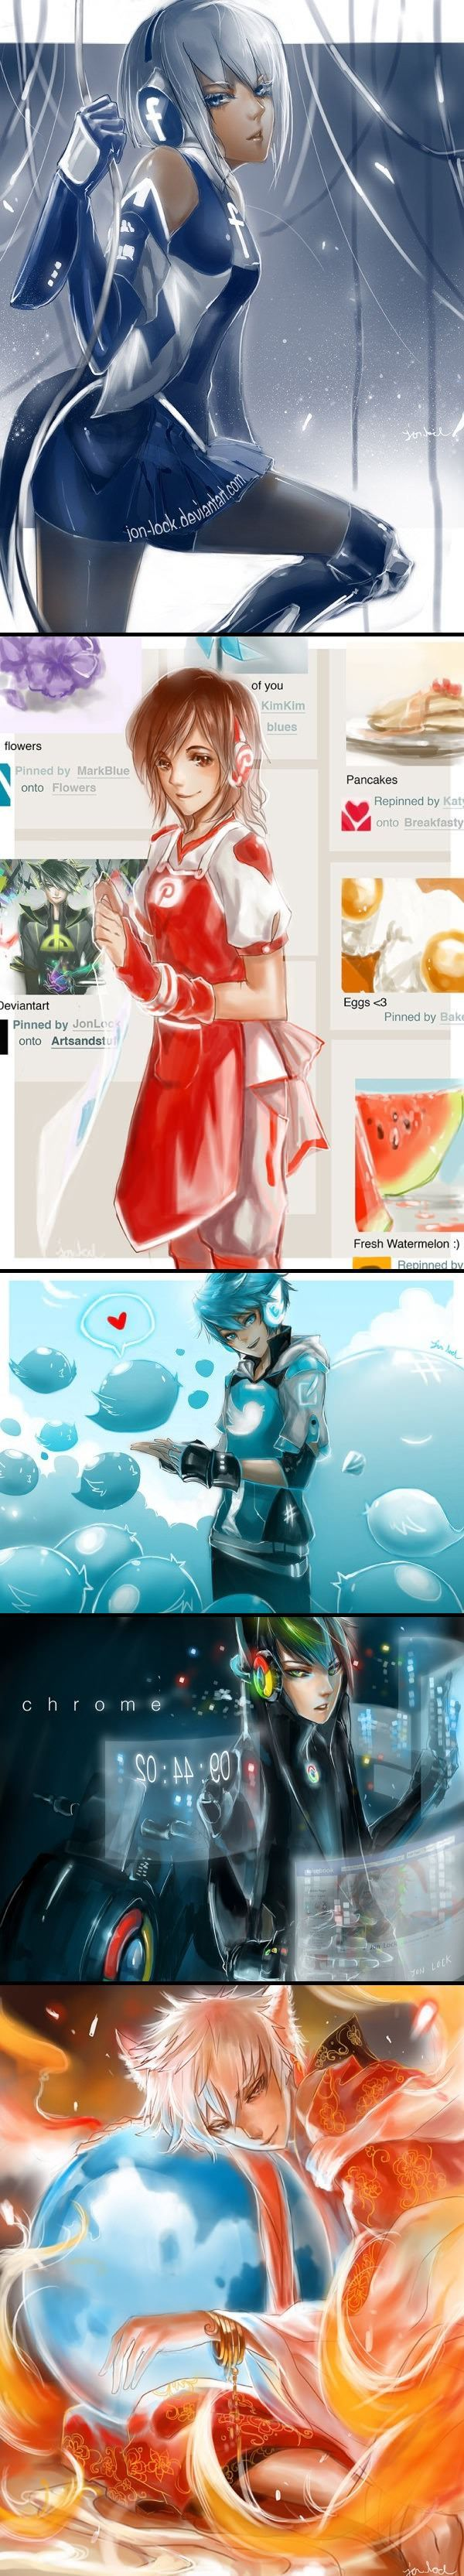 Social Media Sites and Browsers humanized!! Characters drawn by Jon-Lock on Deviantart.com